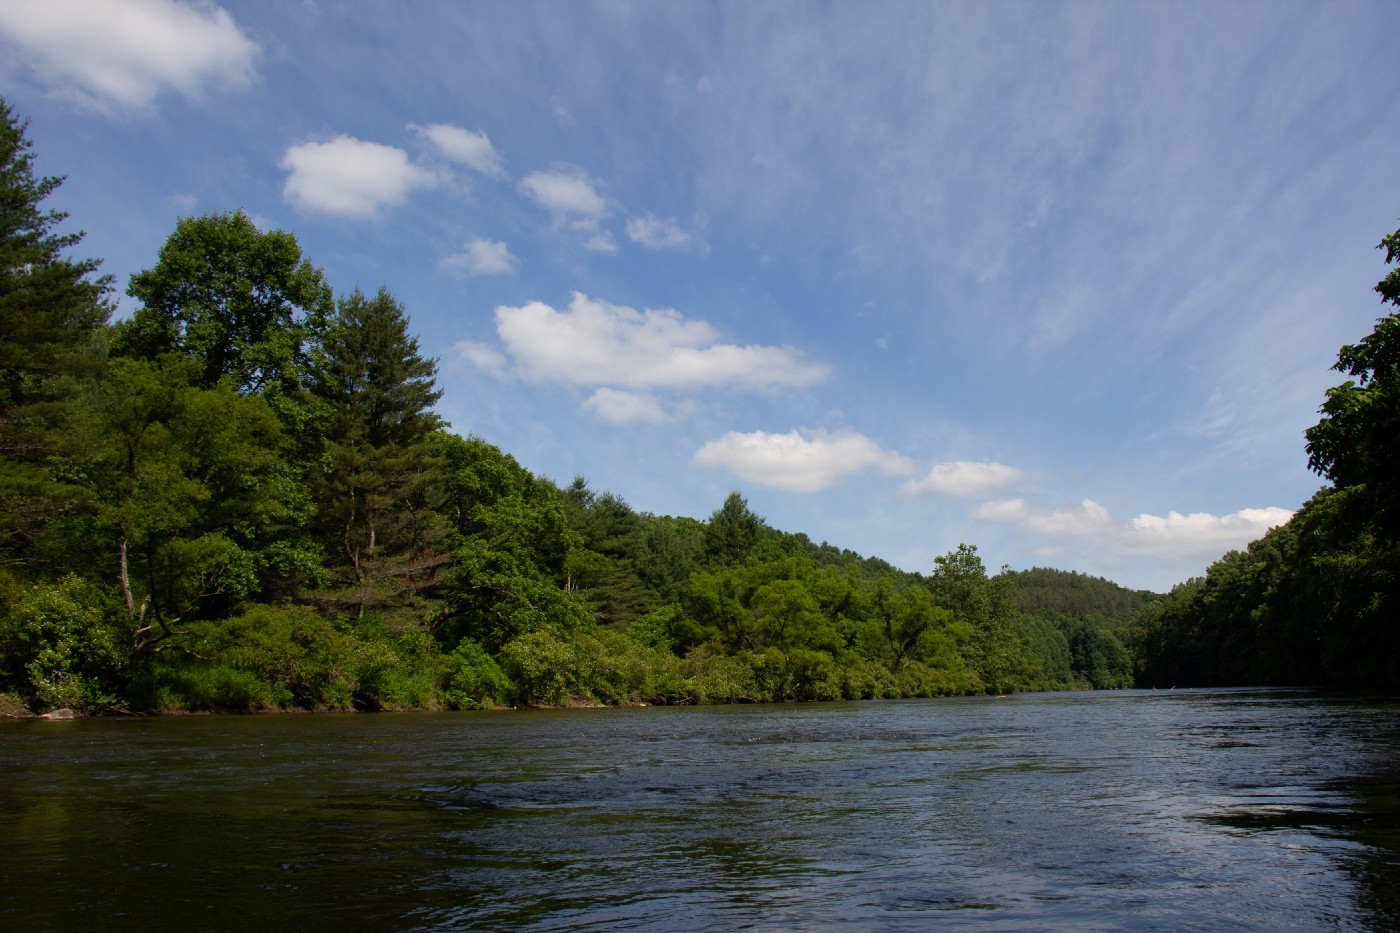 A landscape view of the New River, with blue skies, clouds, green trees, and blue waters